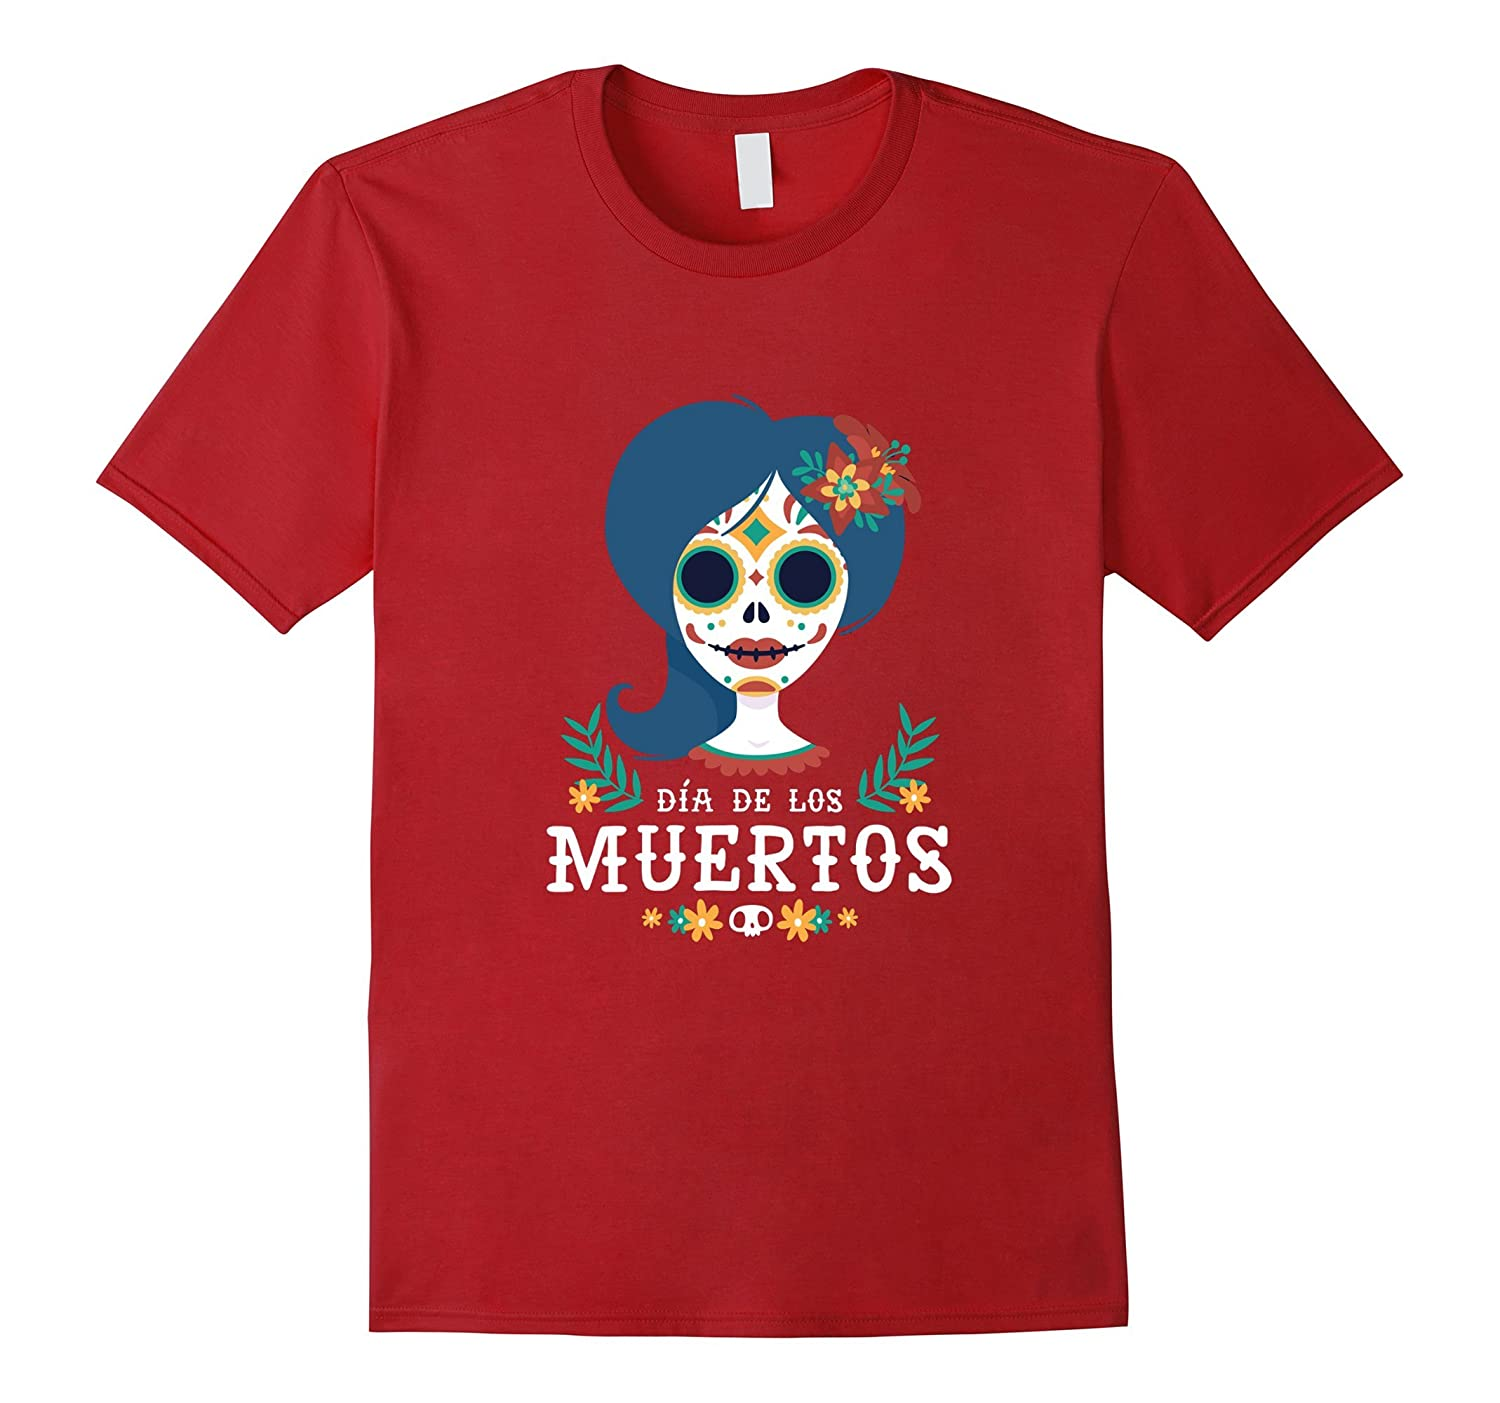 Sugar Skull Cat Women/'s T-Shirt Cute Day of the Dead Los Muertos Halloween Tees